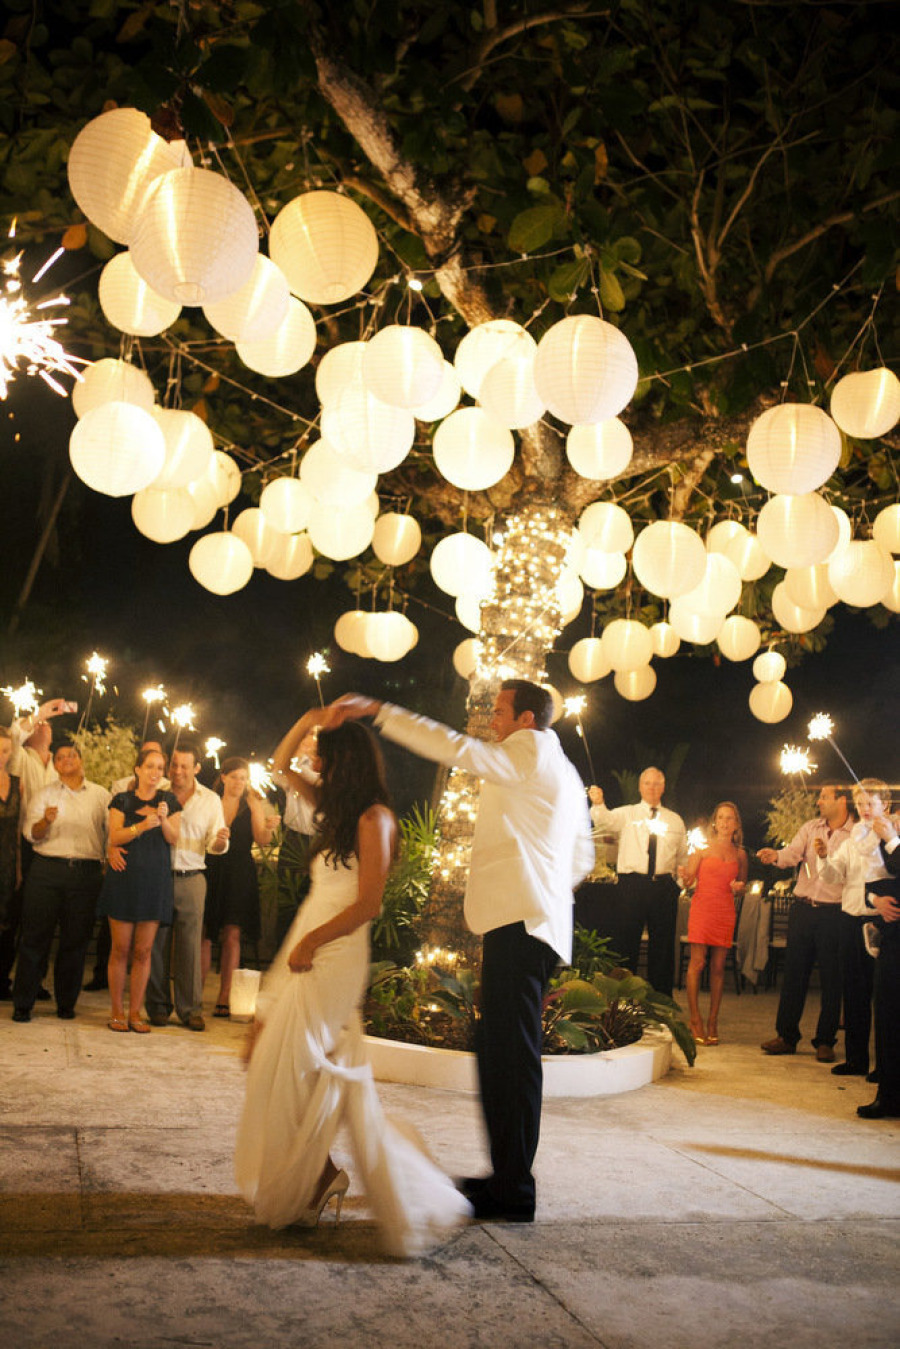 Outdoor Wedding10 Wedding Twinkle Light Ideaswedding Lightsoutdoor